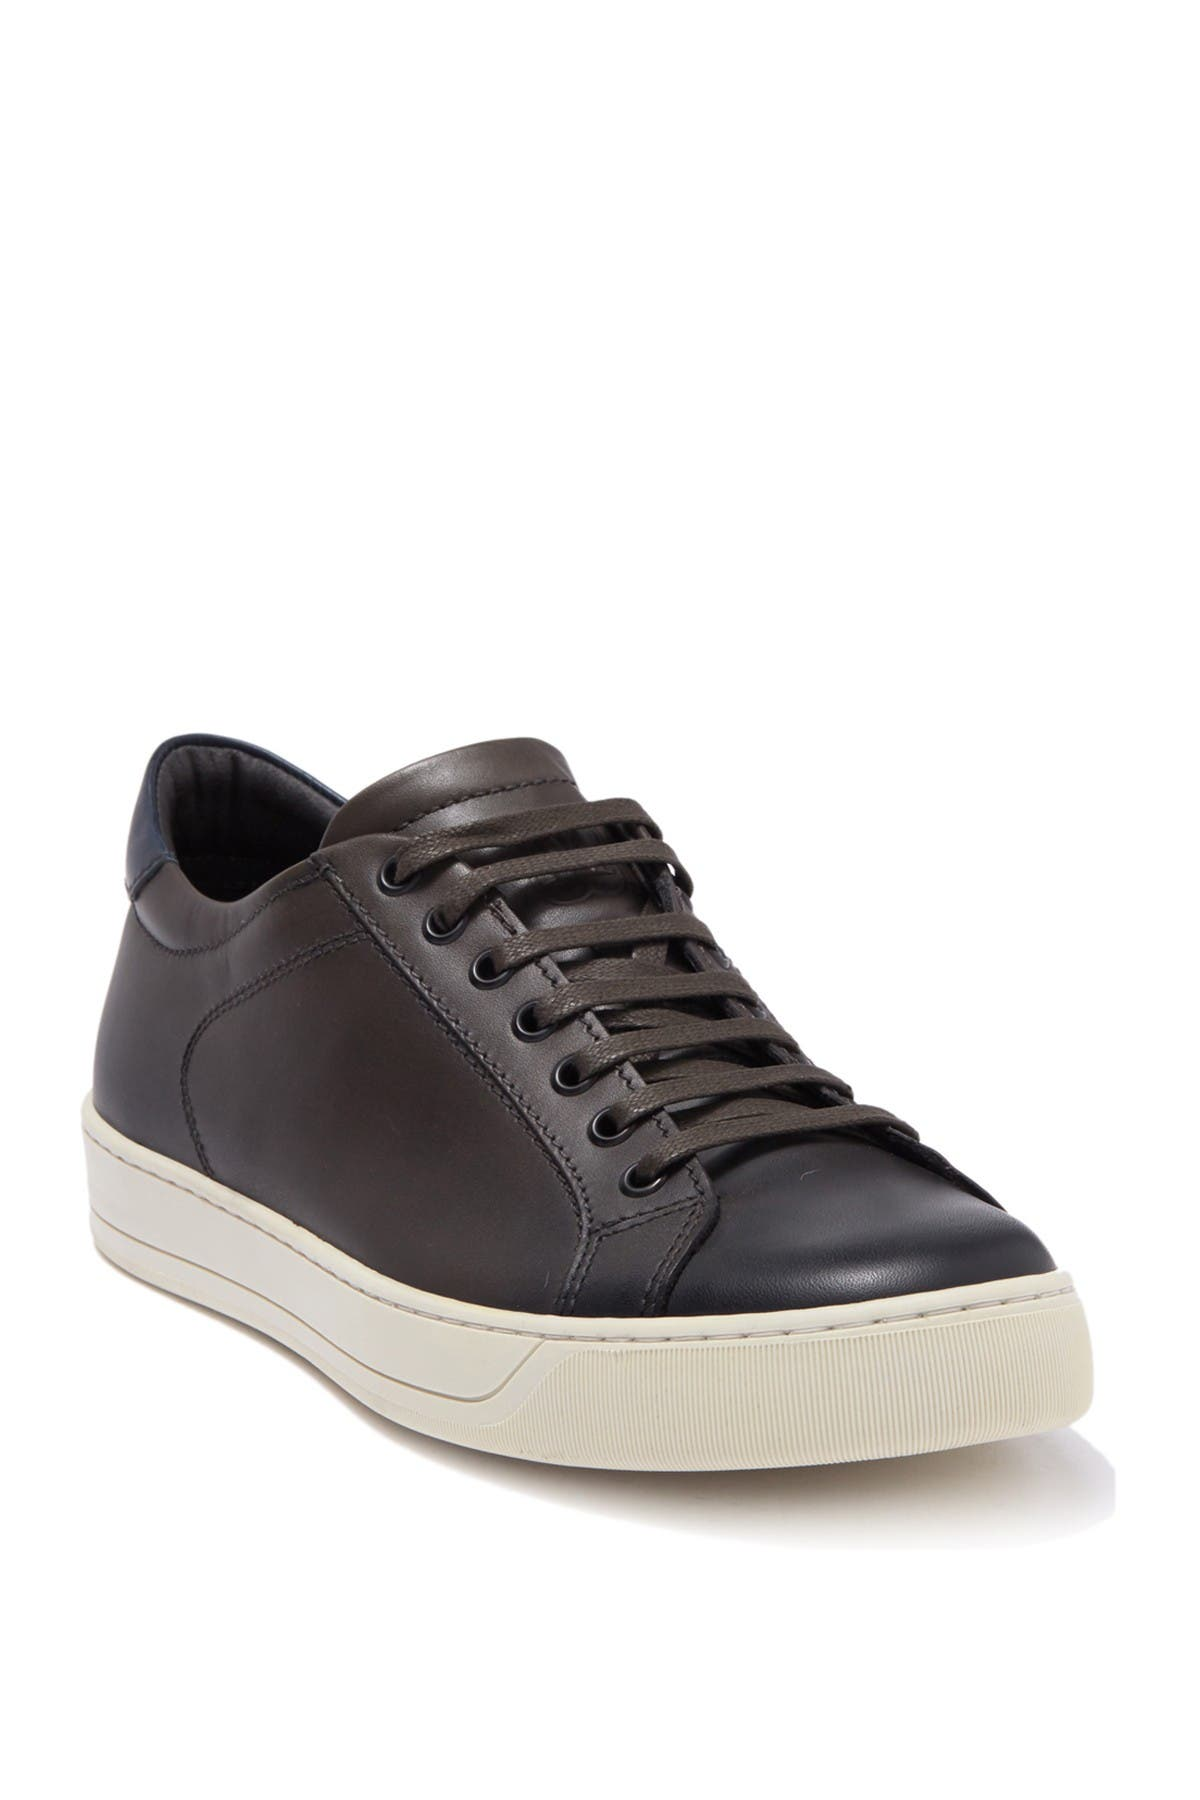 Image of Bruno Magli Westy Leather Low Top Sneaker